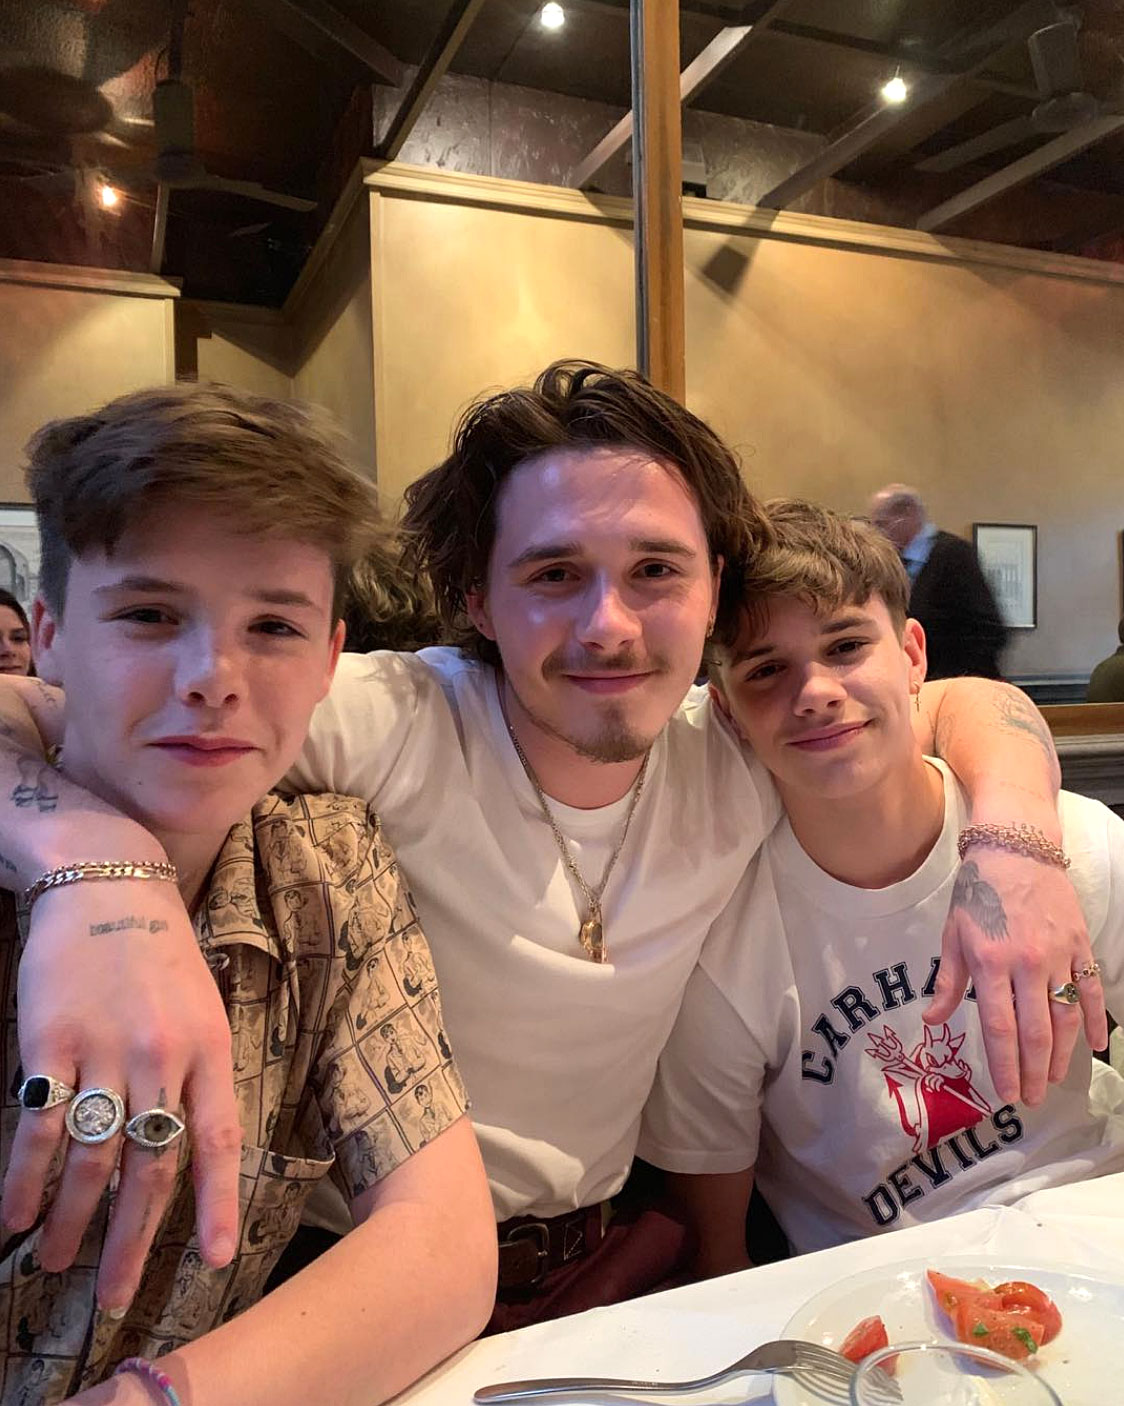 David Beckham Birthday Party - Brooklyn was the perfect big bro and posed with his arm around his two younger siblings.